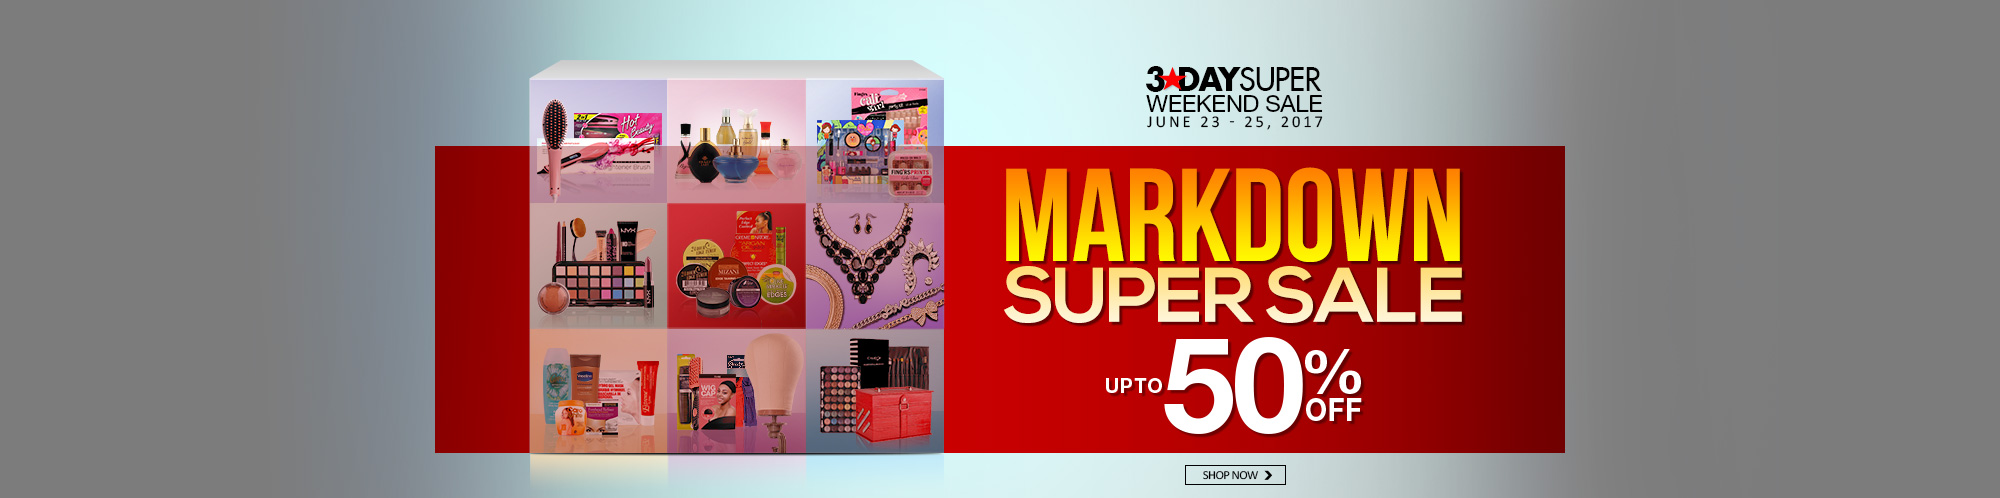 3-DAY SUPER WEEKEND SALE! - Beauty Essentials